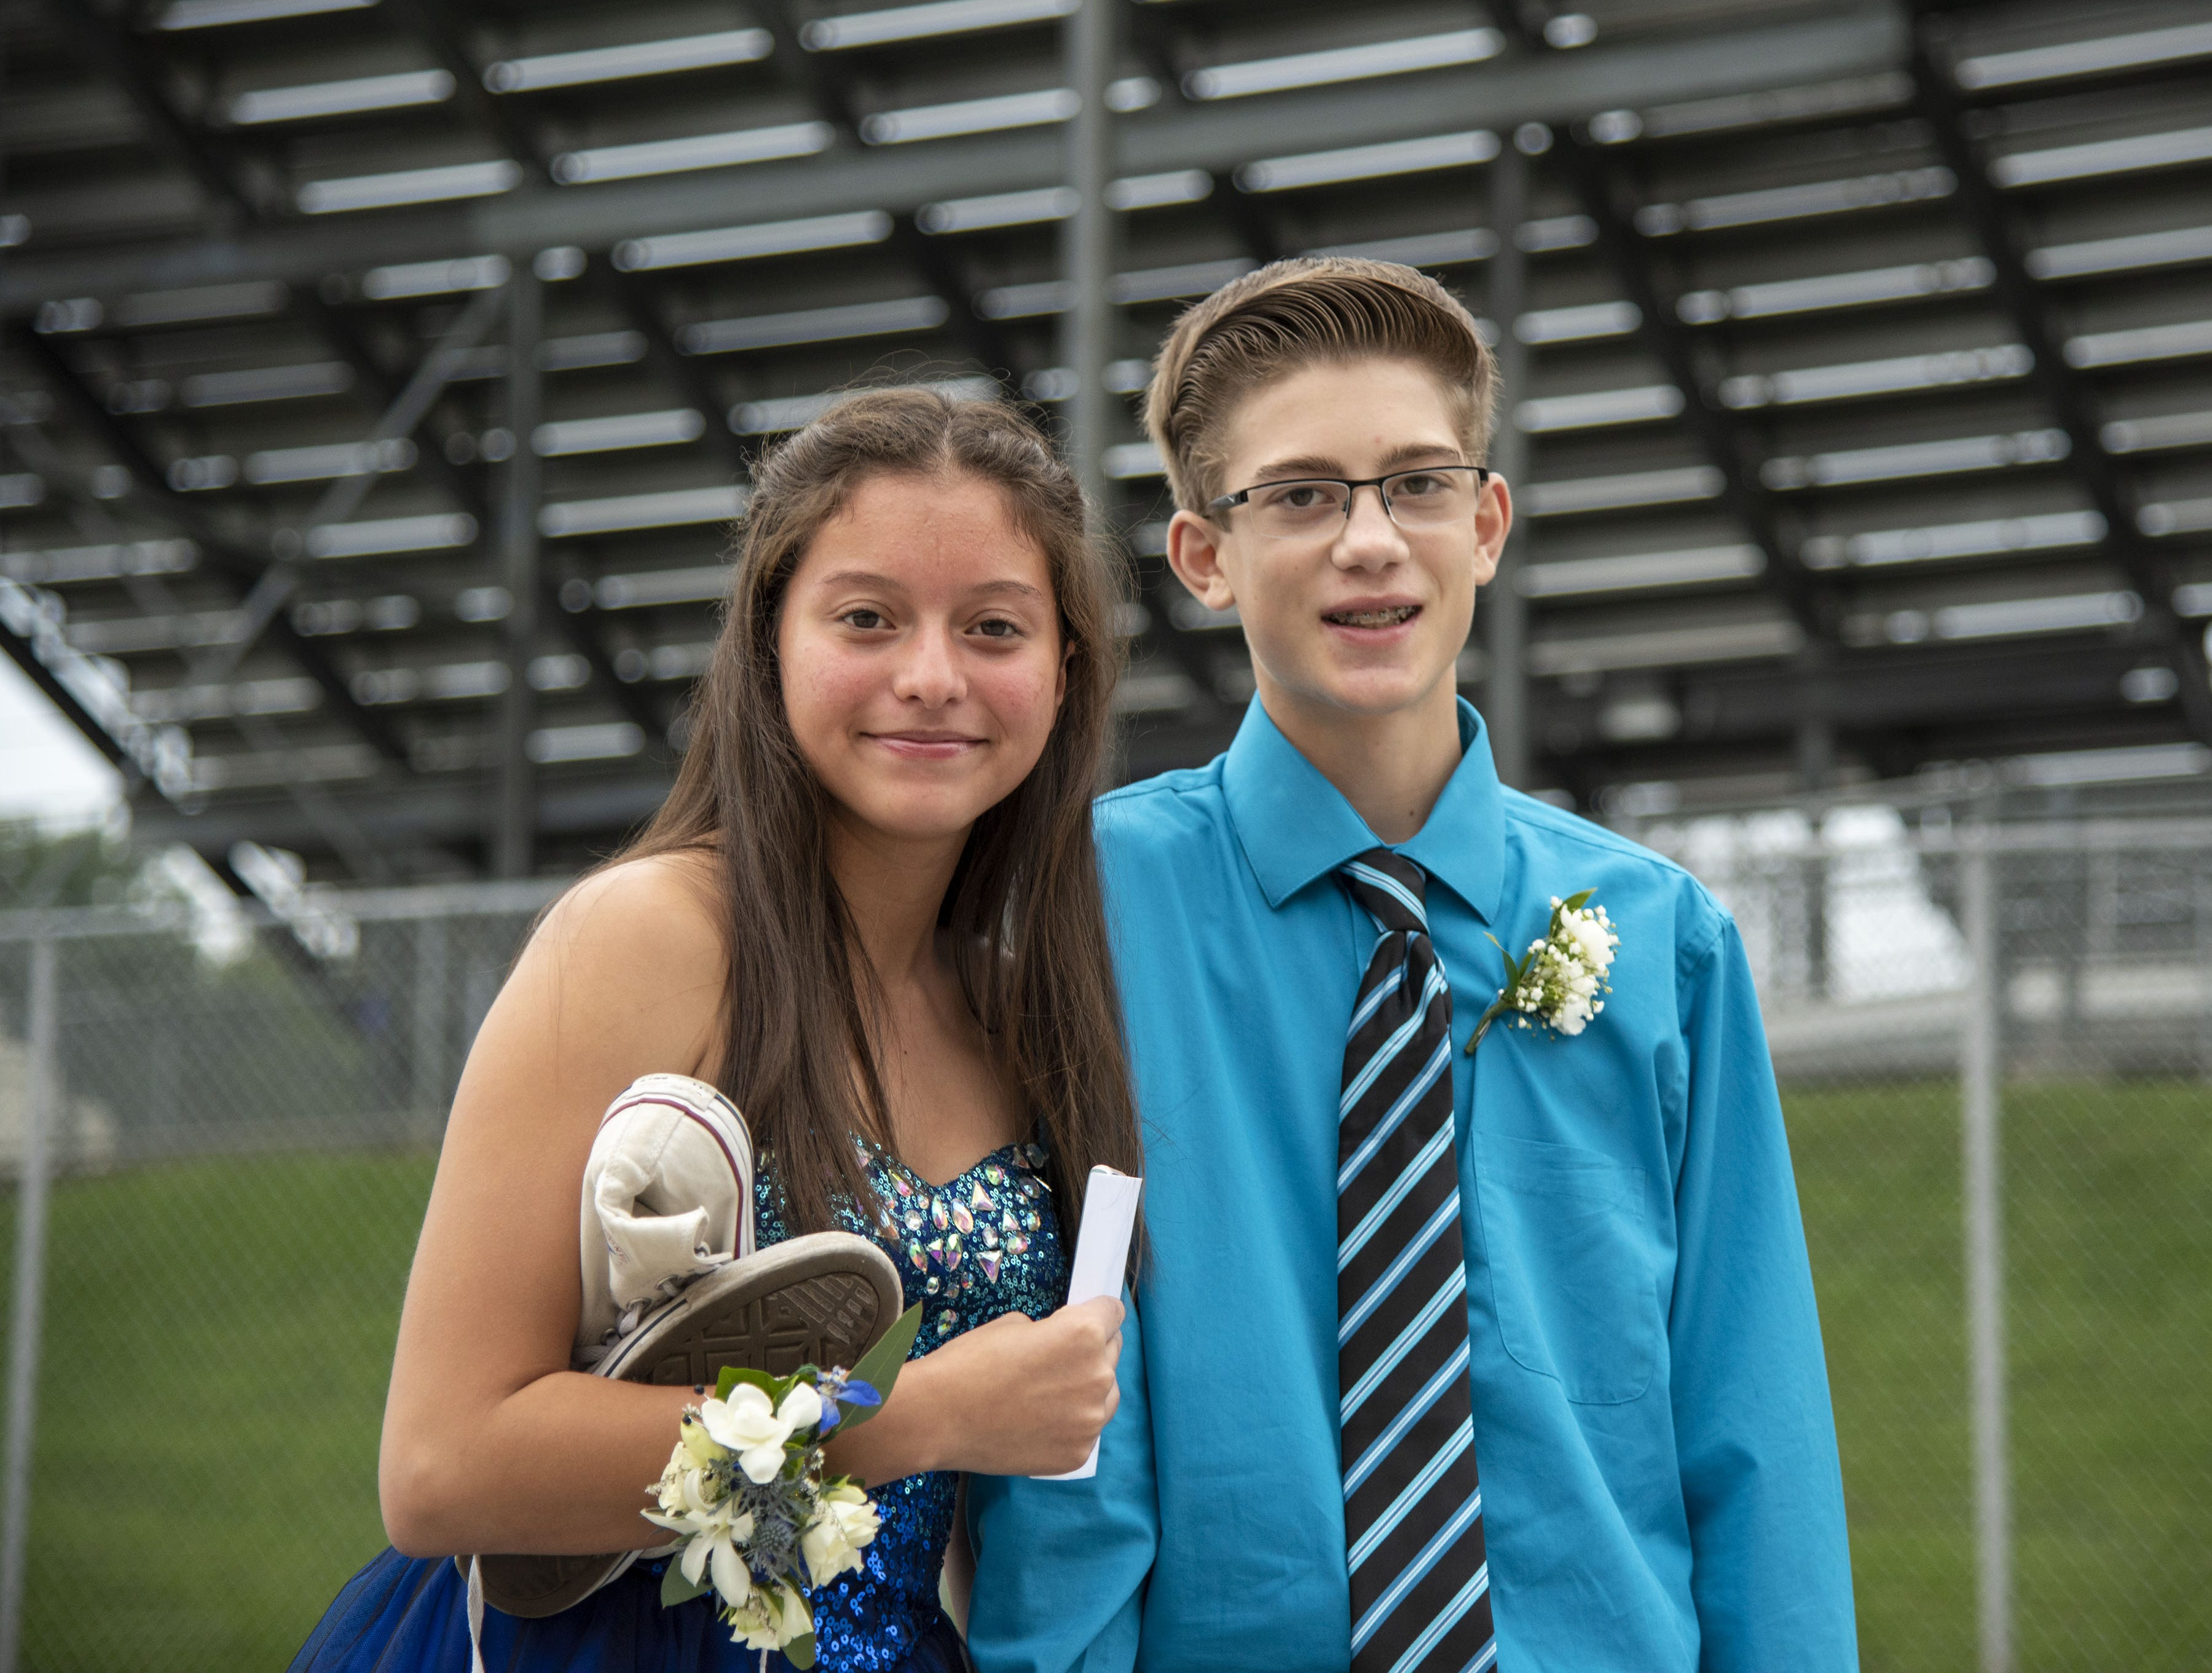 Students pose for a picture at 2018 Dallastown Area High School homecoming on Saturday, Oct. 06, 2018.